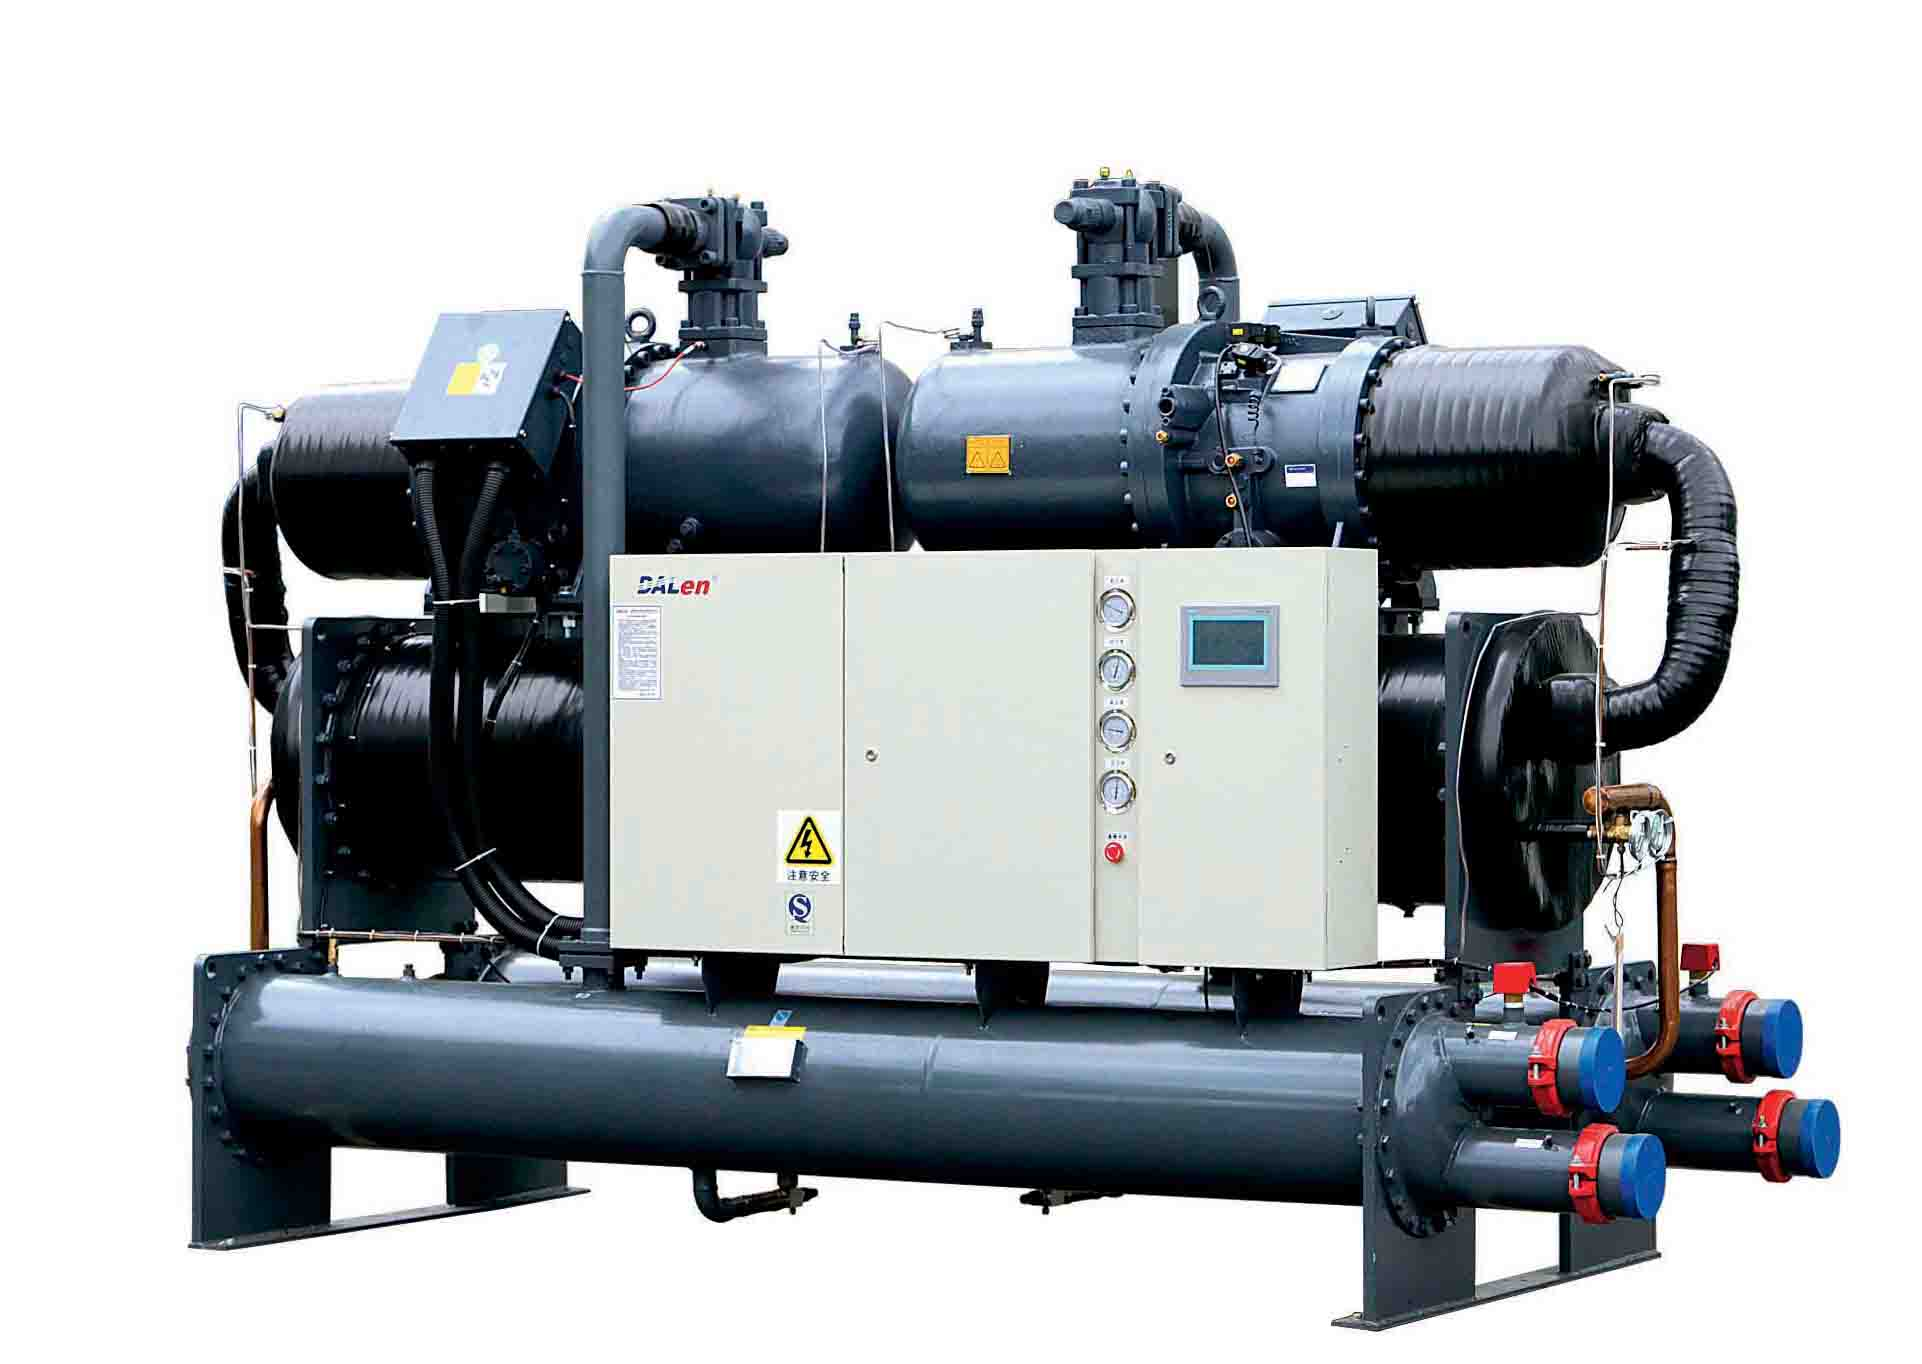 SCREW COMPRESSOR CHILLER Chiller Systems #762E26